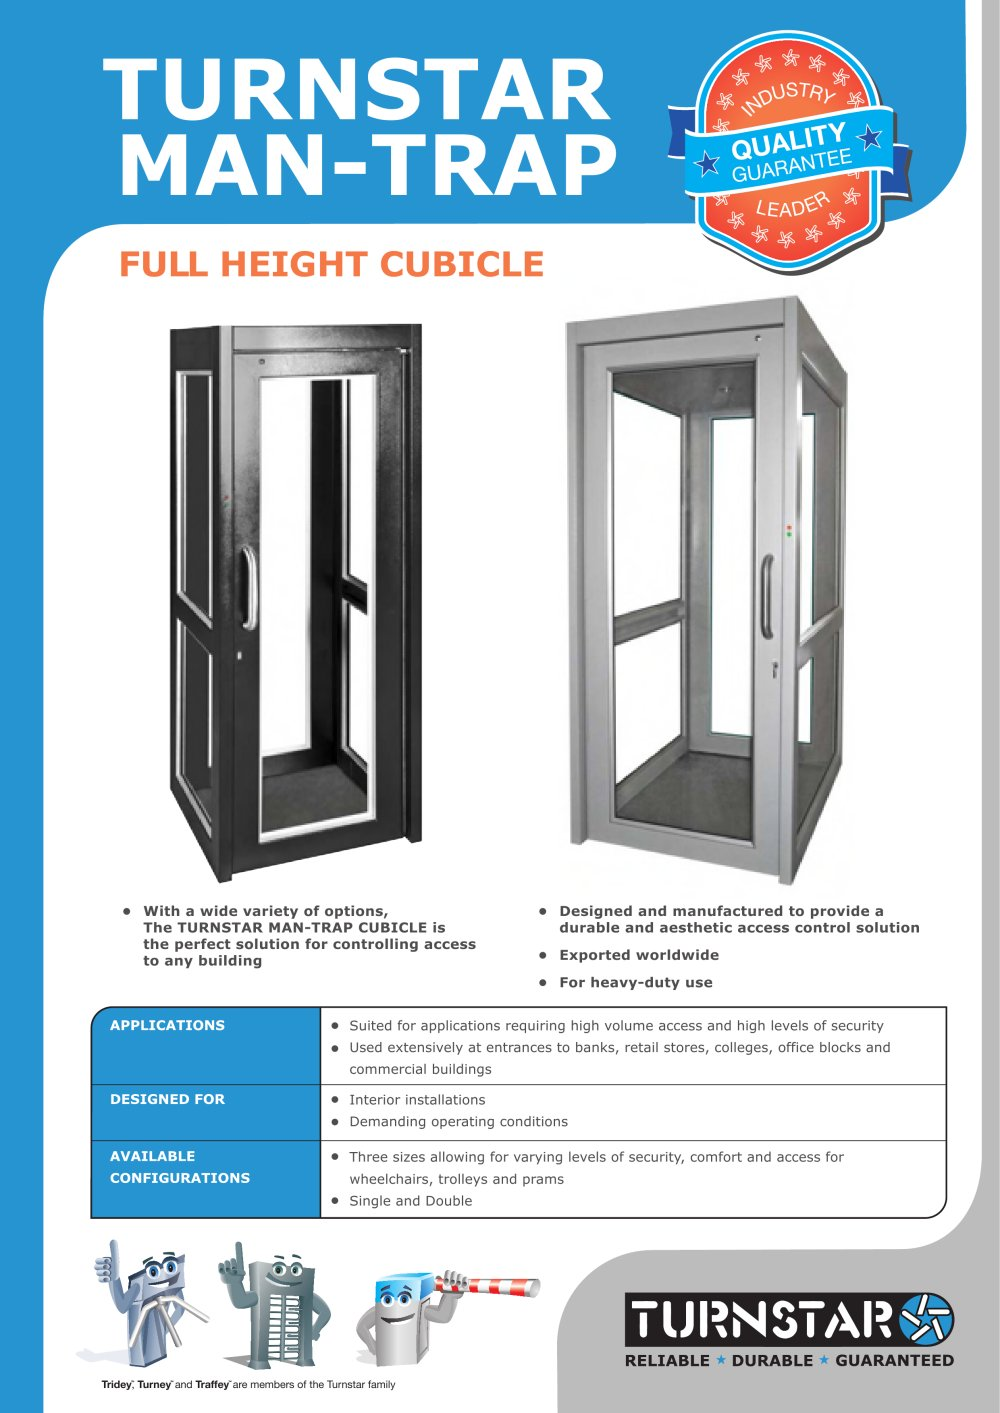 Man Trap Cubicle Brochure - Turnstar Systems - PDF Catalogues ... Wiring Diagram For A Man Trap on timing for a, accessories for a, frame for a, tires for a, cover for a, heater for a, body for a, headlight for a, parts for a, dimensions for a, timer for a,